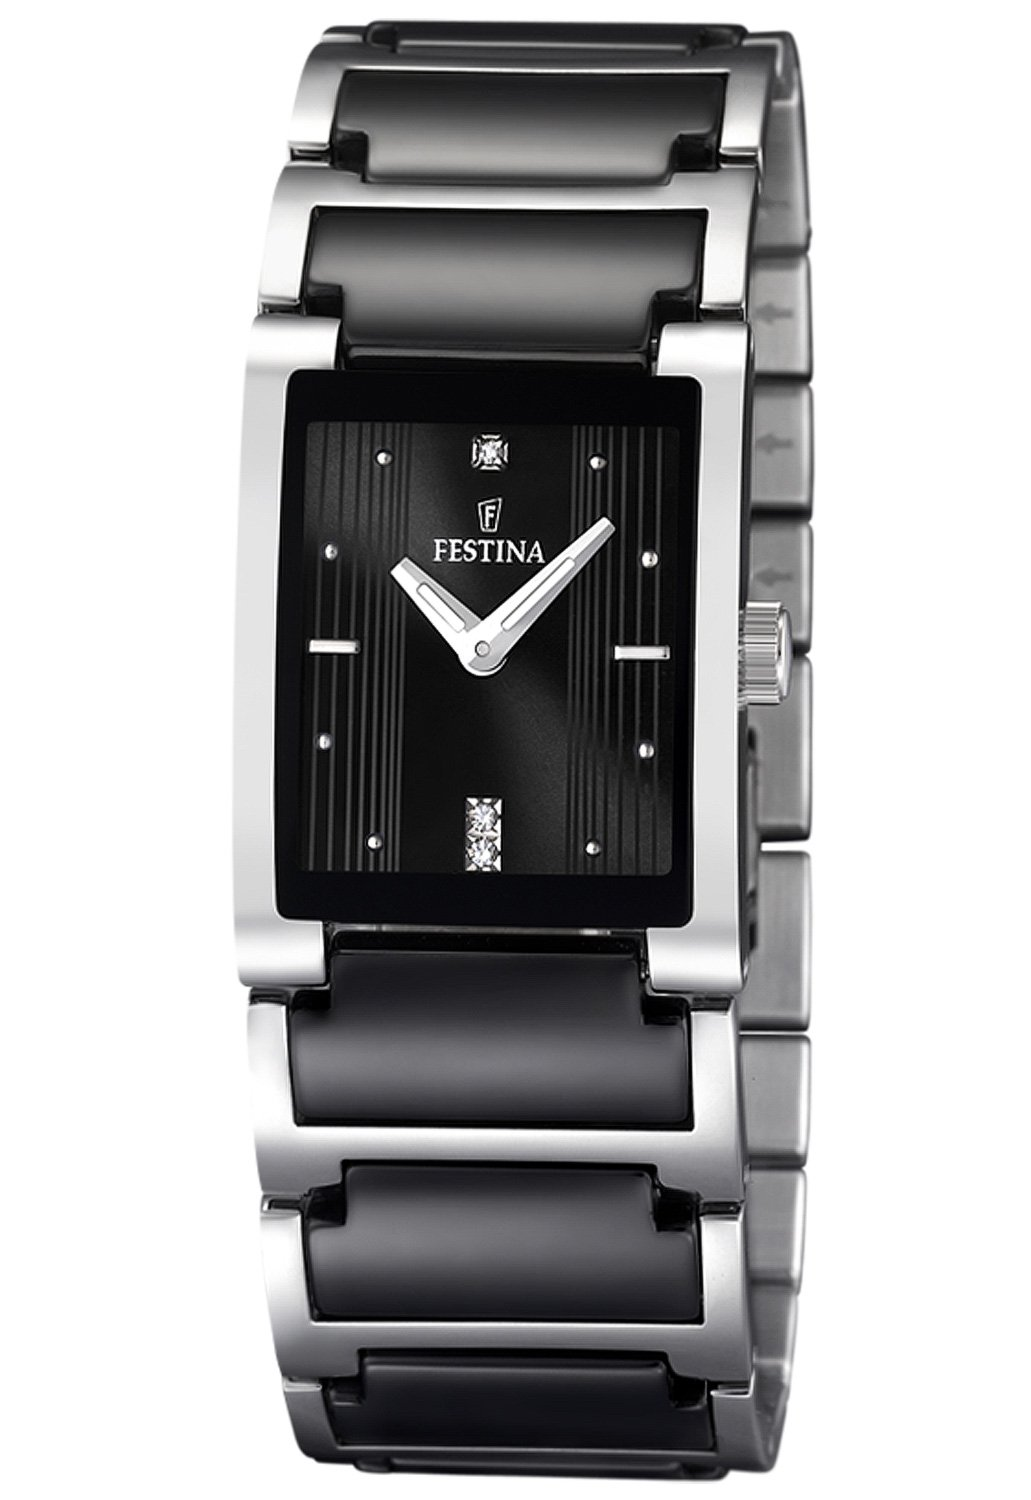 festina ladies watches at low prices uhrcenter watch shop. Black Bedroom Furniture Sets. Home Design Ideas